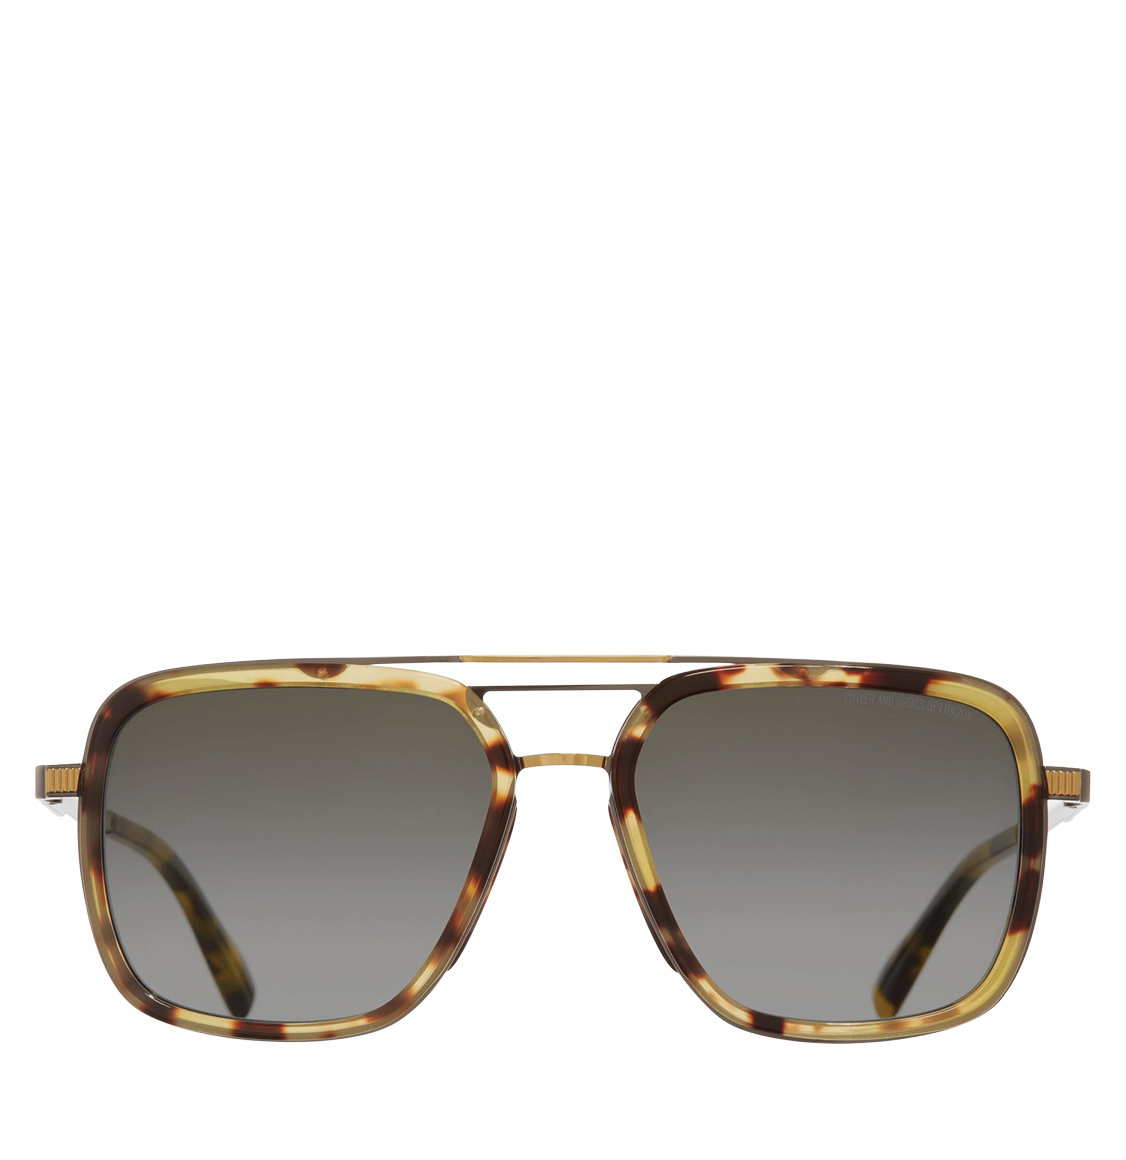 Cutler and Gross 1324-04 Aviator-Frame Tortoiseshell and Gold Metal 58 Γυαλιά Ηλίου